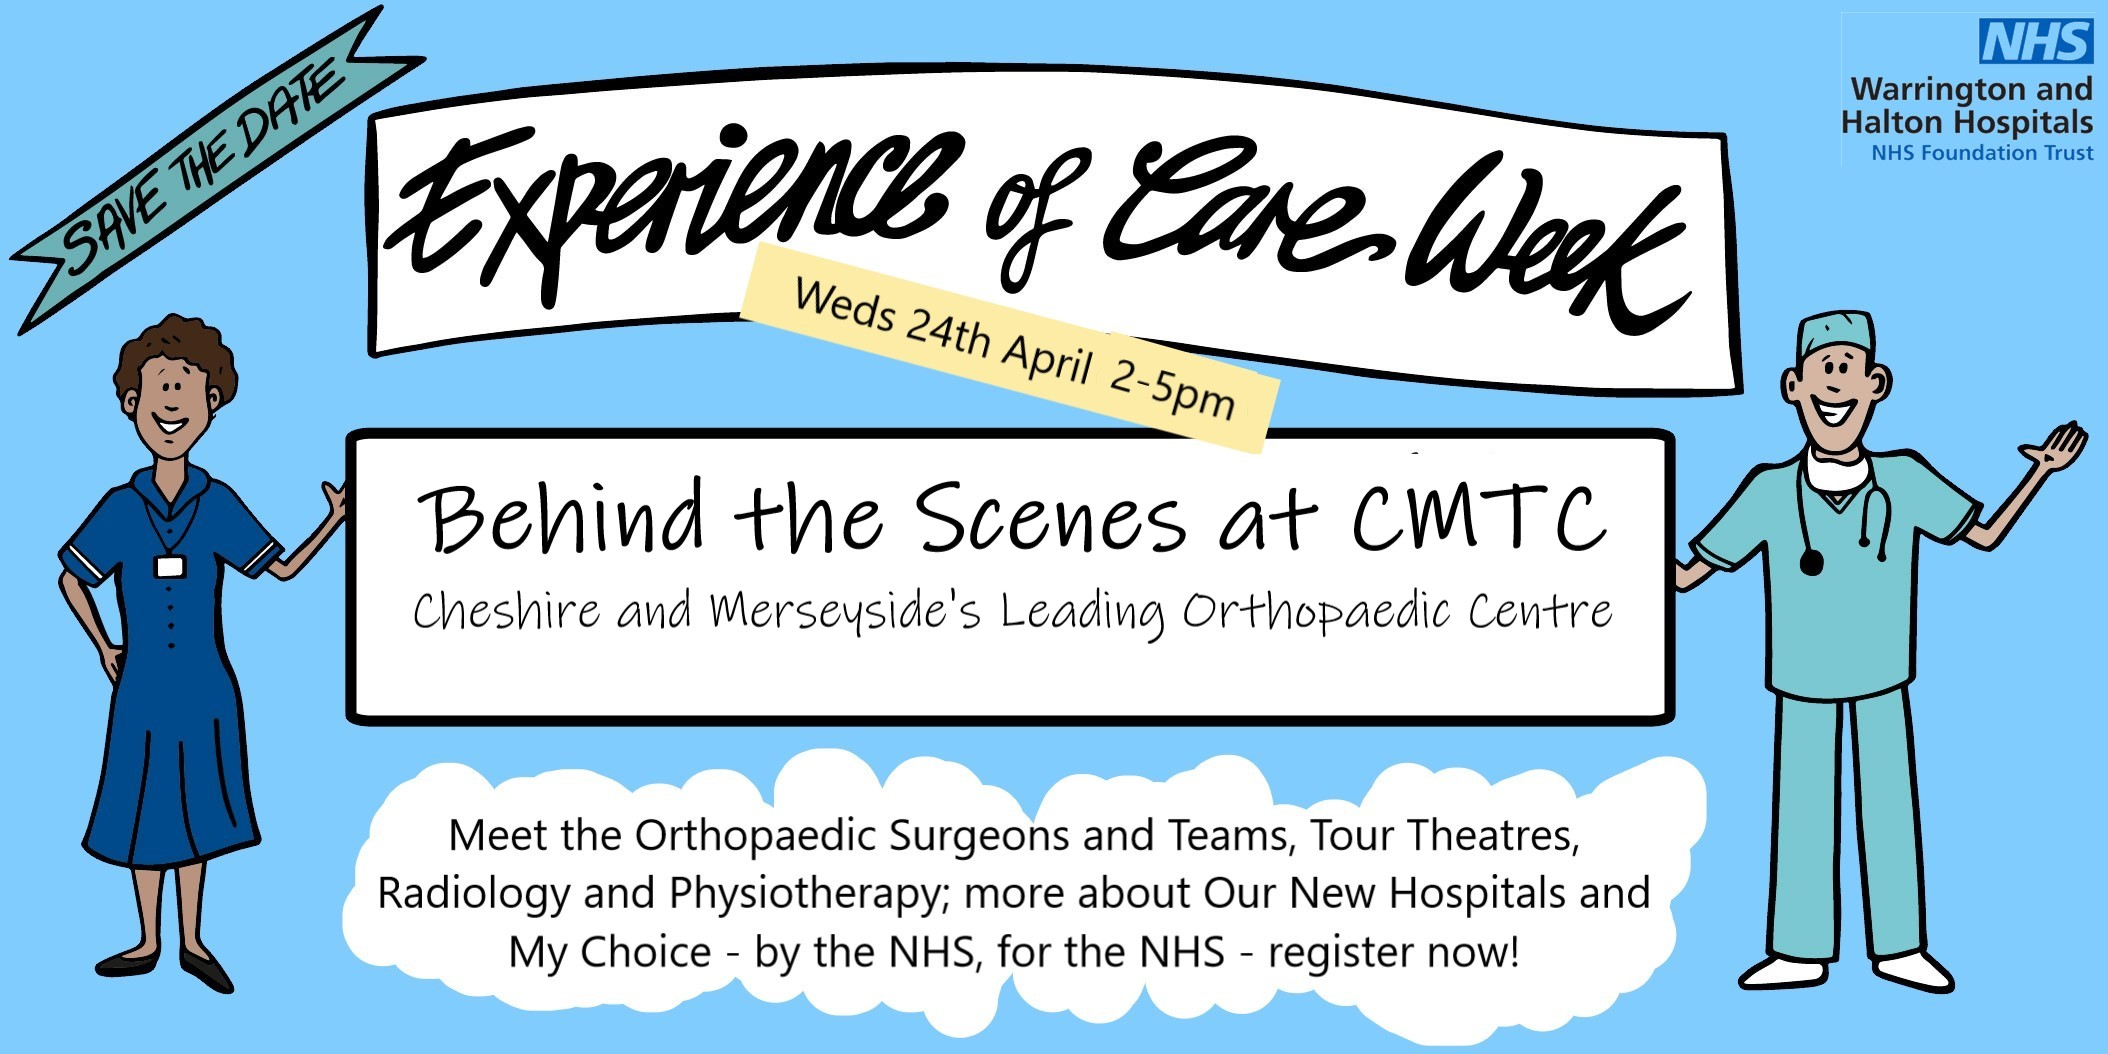 Behind the Scenes at CMTC - 24 April 2-5pm